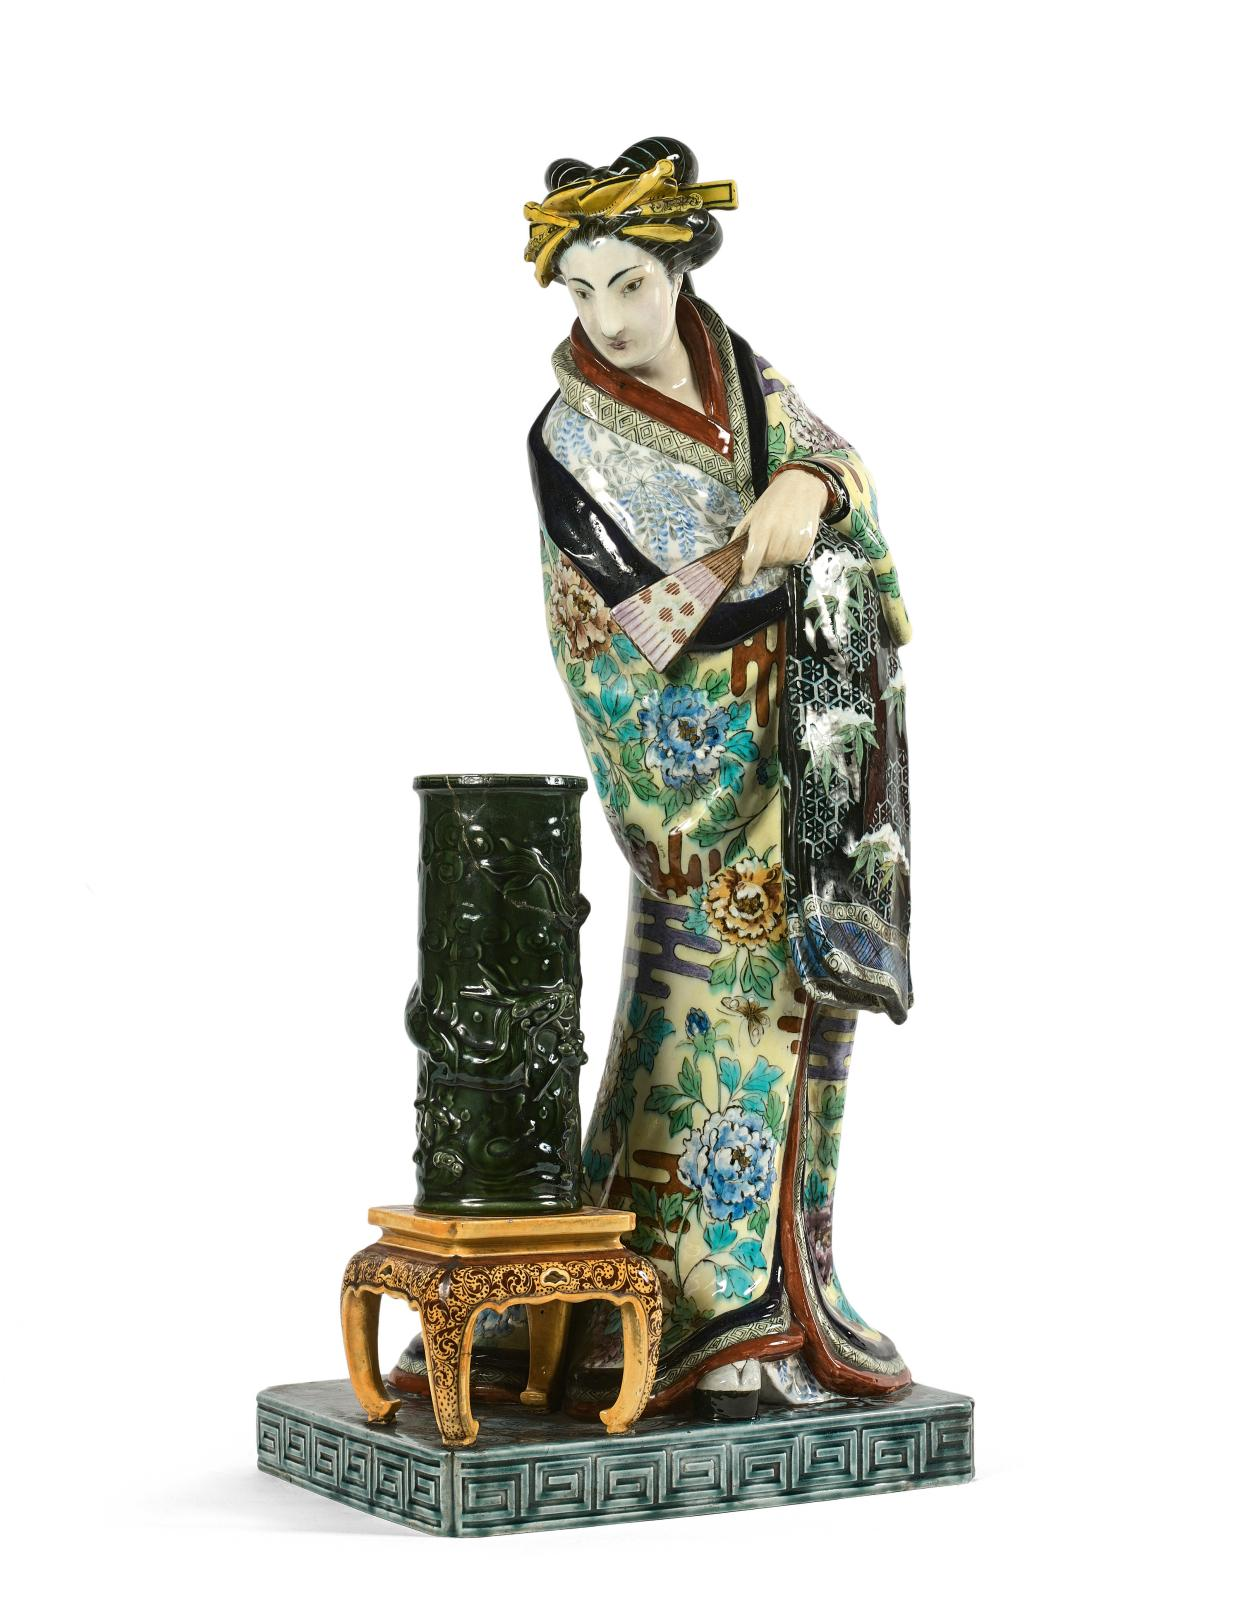 "Théodore Deck (earthenware maker) and Émile Reiber (designer), ""La Japonaise"", earthenware group with polychrome glaze.Drouot Estimations auction hous"